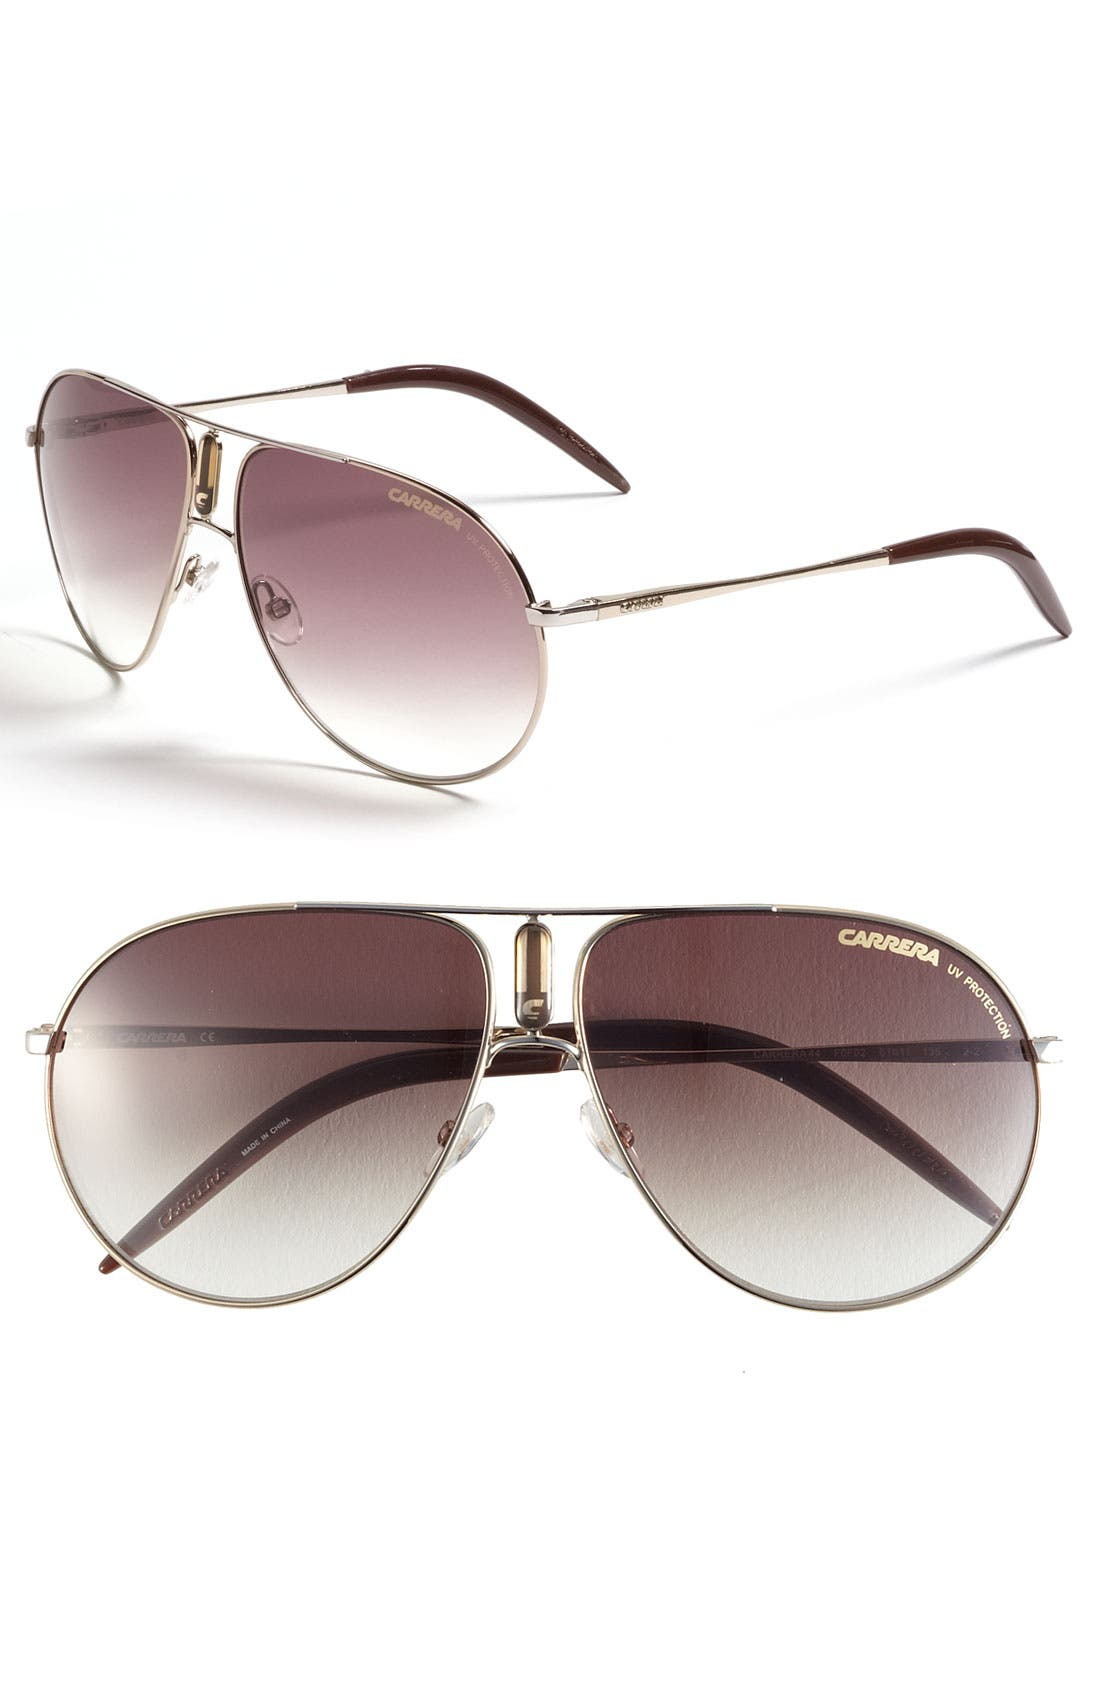 Alternate Image 1 Selected - Carrera Eyewear 61mm Aviator Sunglasses